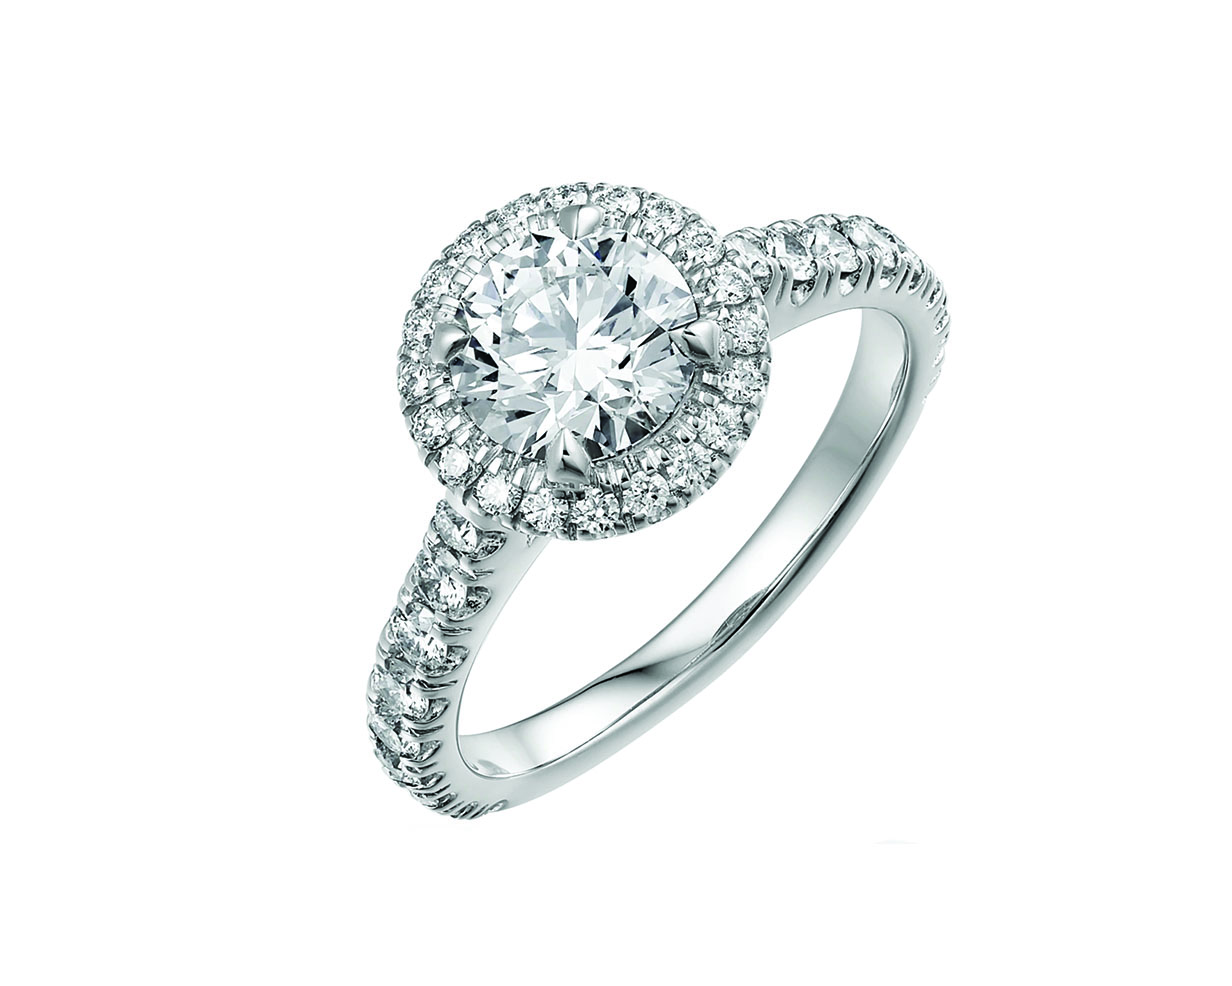 Classic round cut diamond engagement ring with a halo of diamonds and platinum diamond band